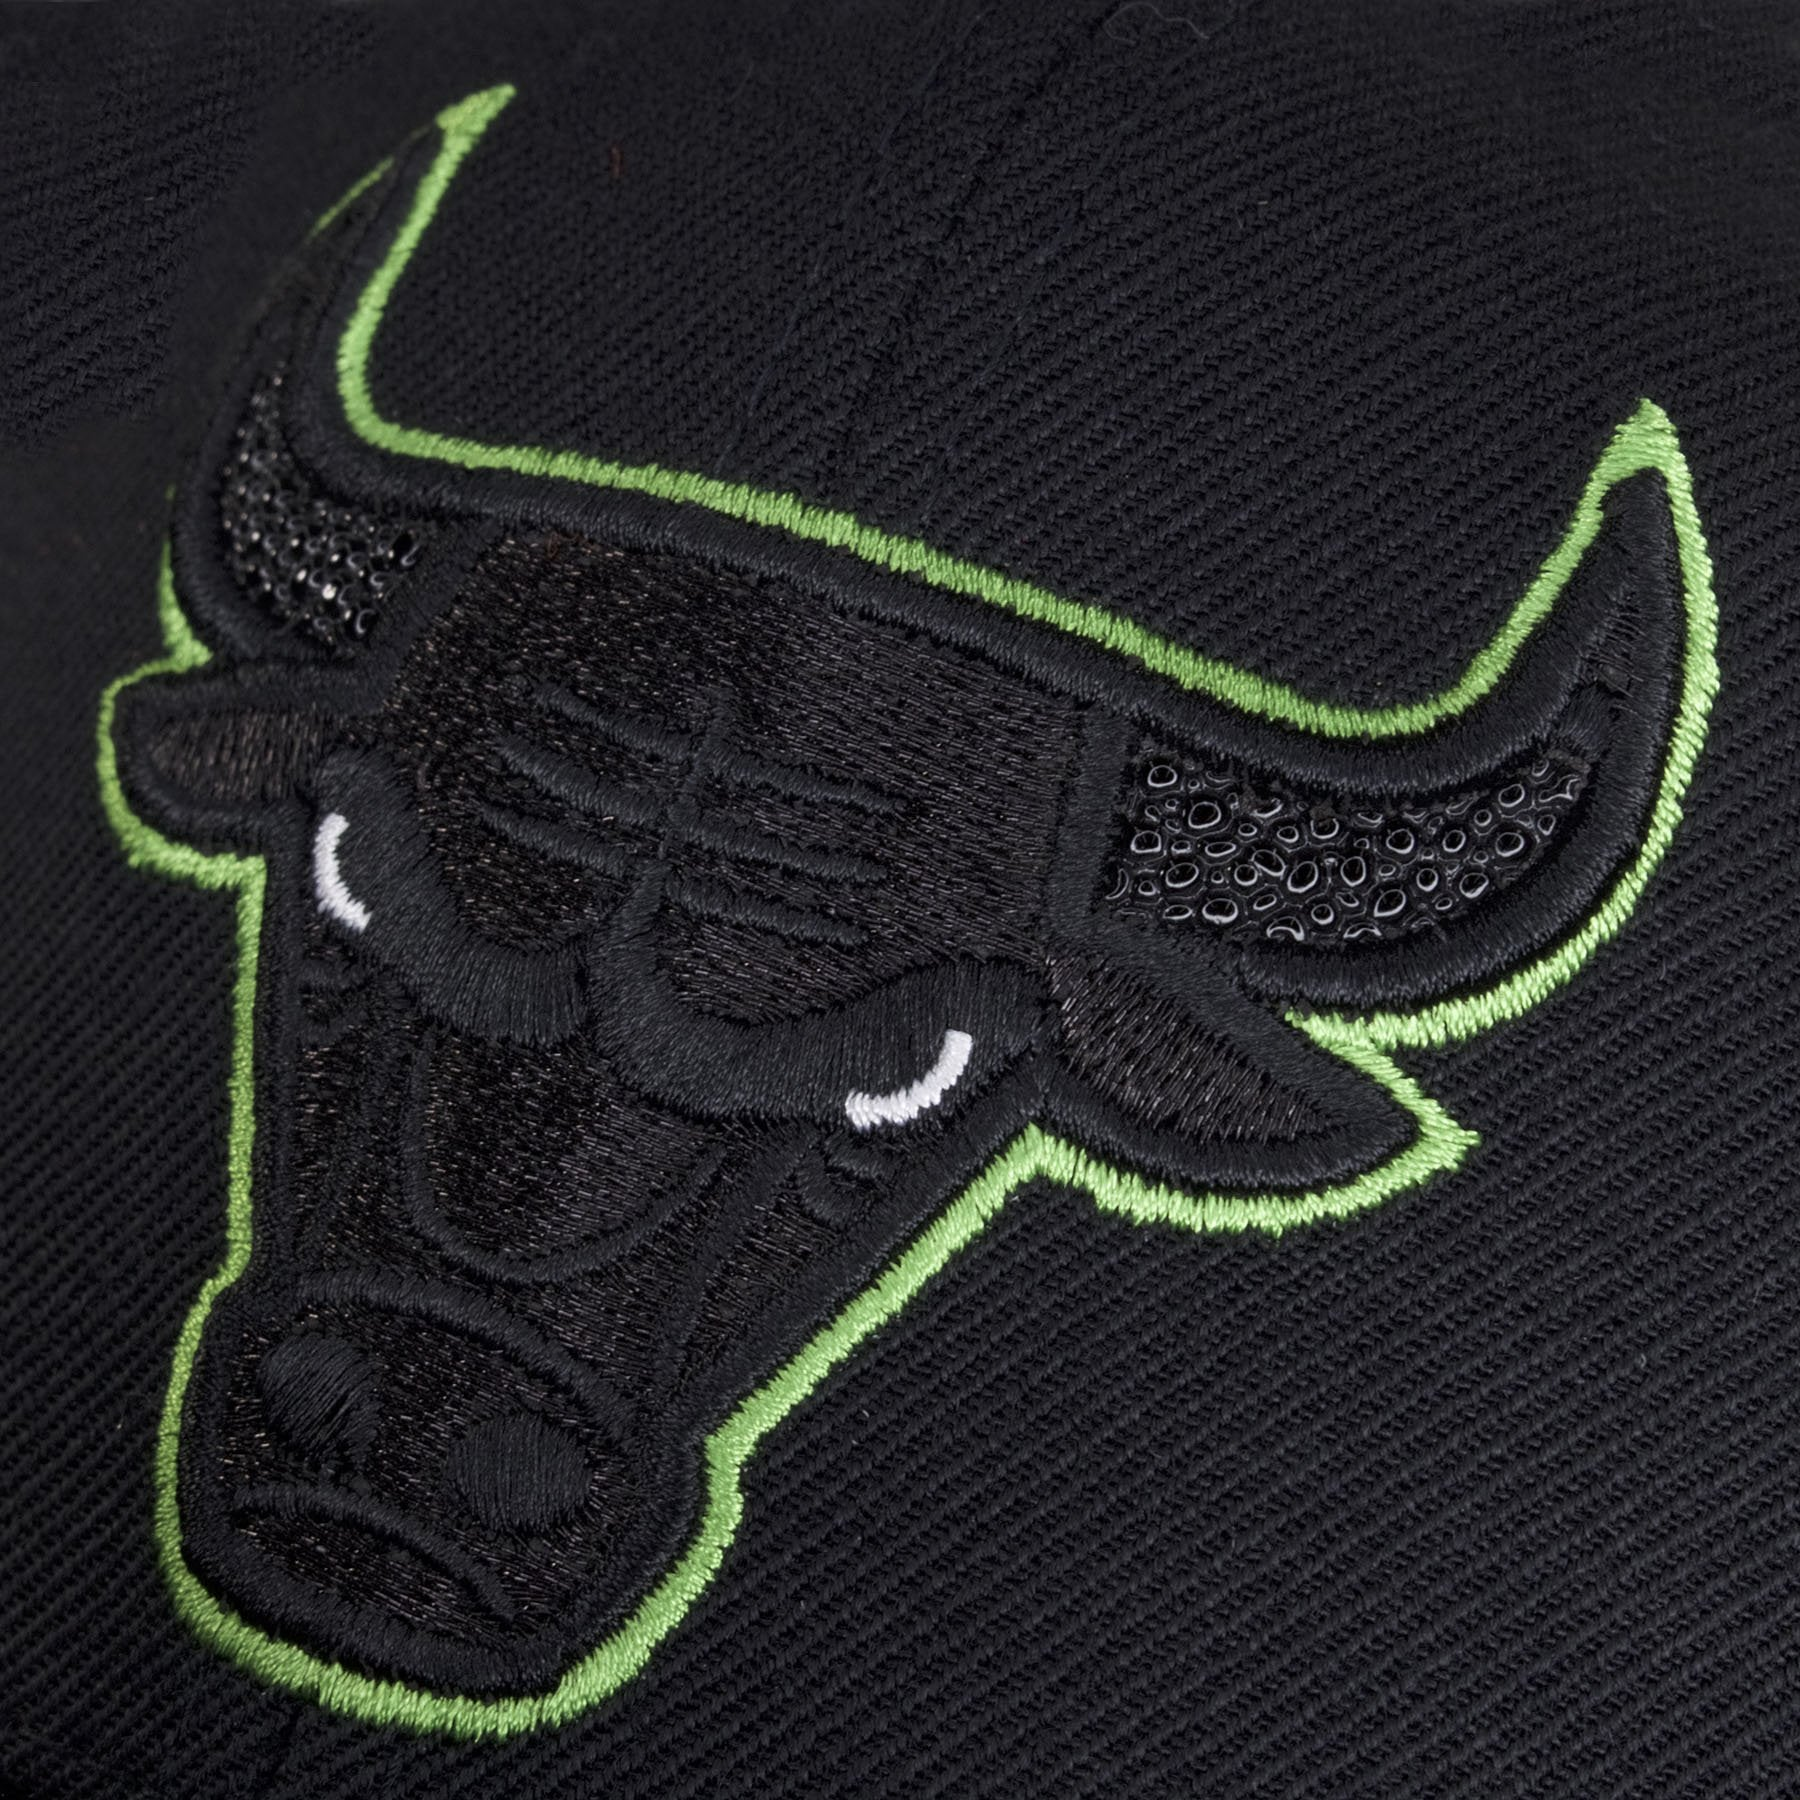 f3b9daf7938cd0 ... The outline of the Chicago Bulls logo is made with neon green. The  sides of this Altitude Chicago Bulls black ...